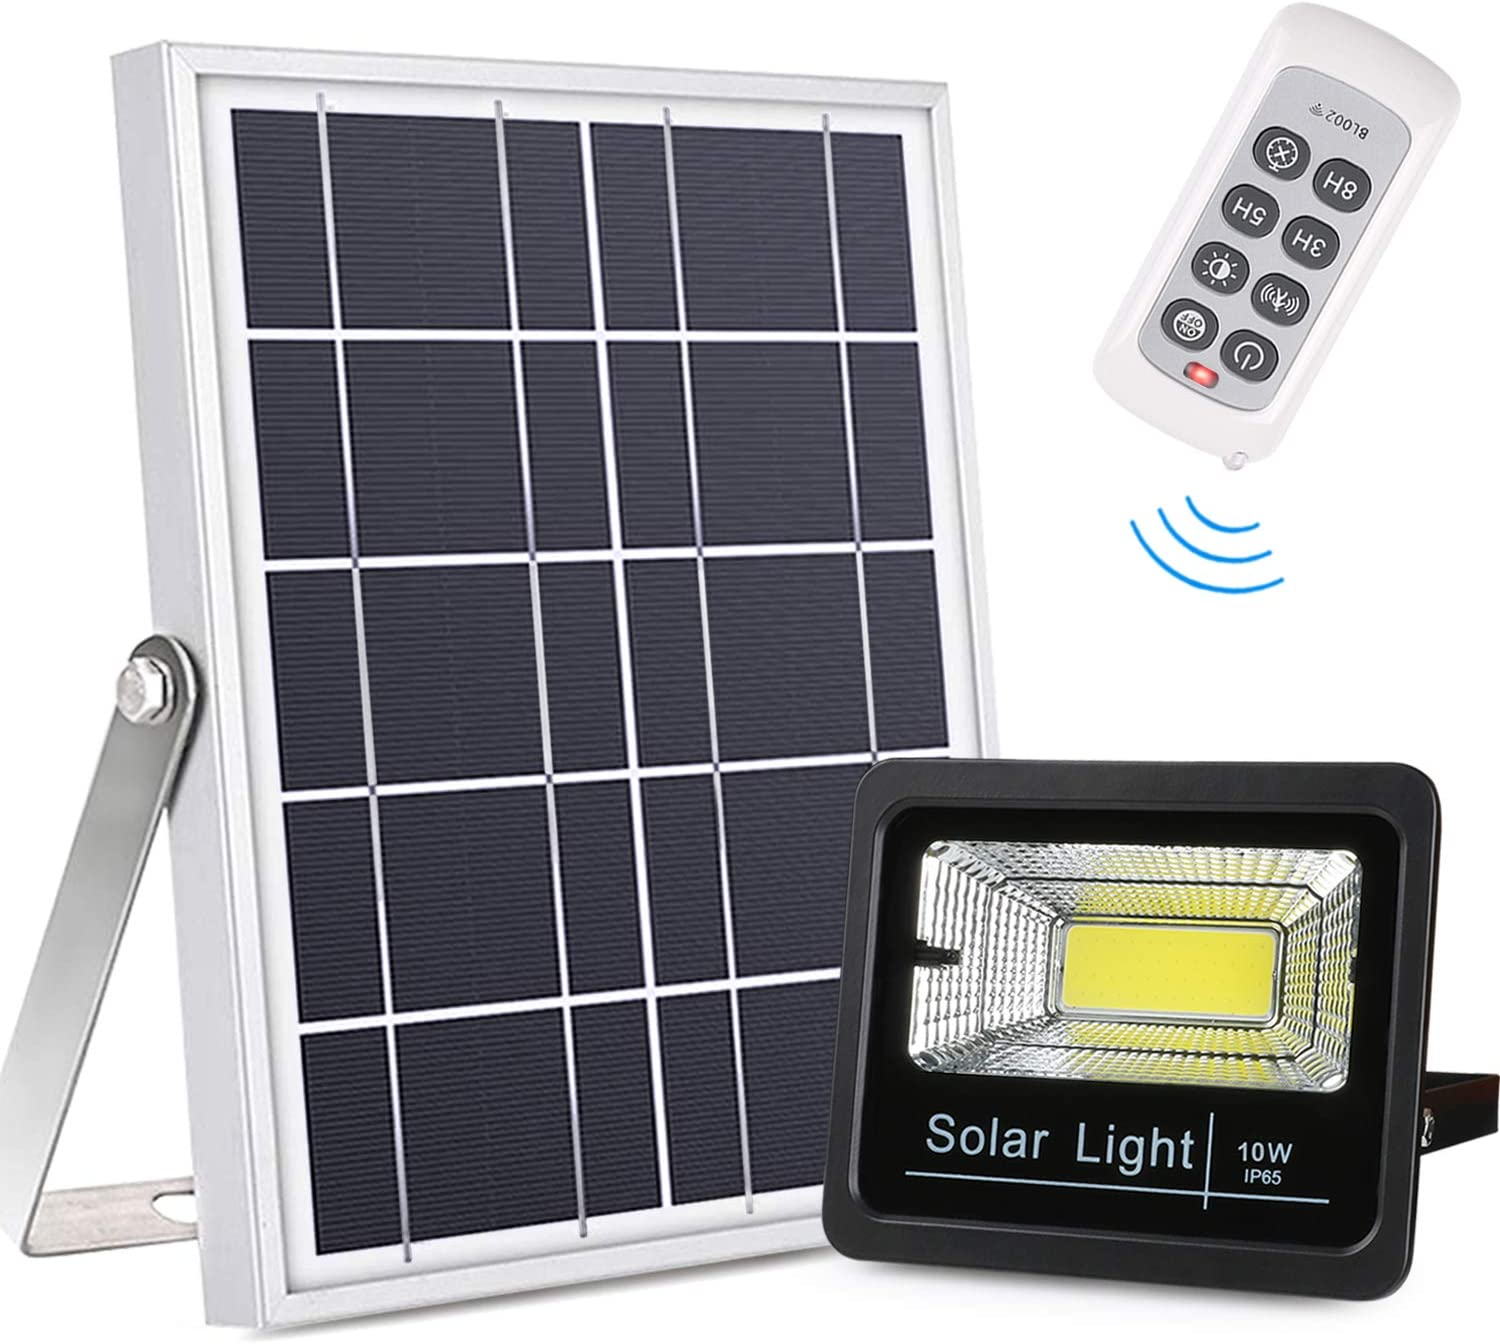 Updated Solar Flood Lights with Multi Modes, Remote Control Solar Lights Dusk to Dawn, Motion Sensor Solar Security Lights Auto On/Off Outdoor Waterproof for Yard, Barn, Driveway, Deck, Farm, Patio